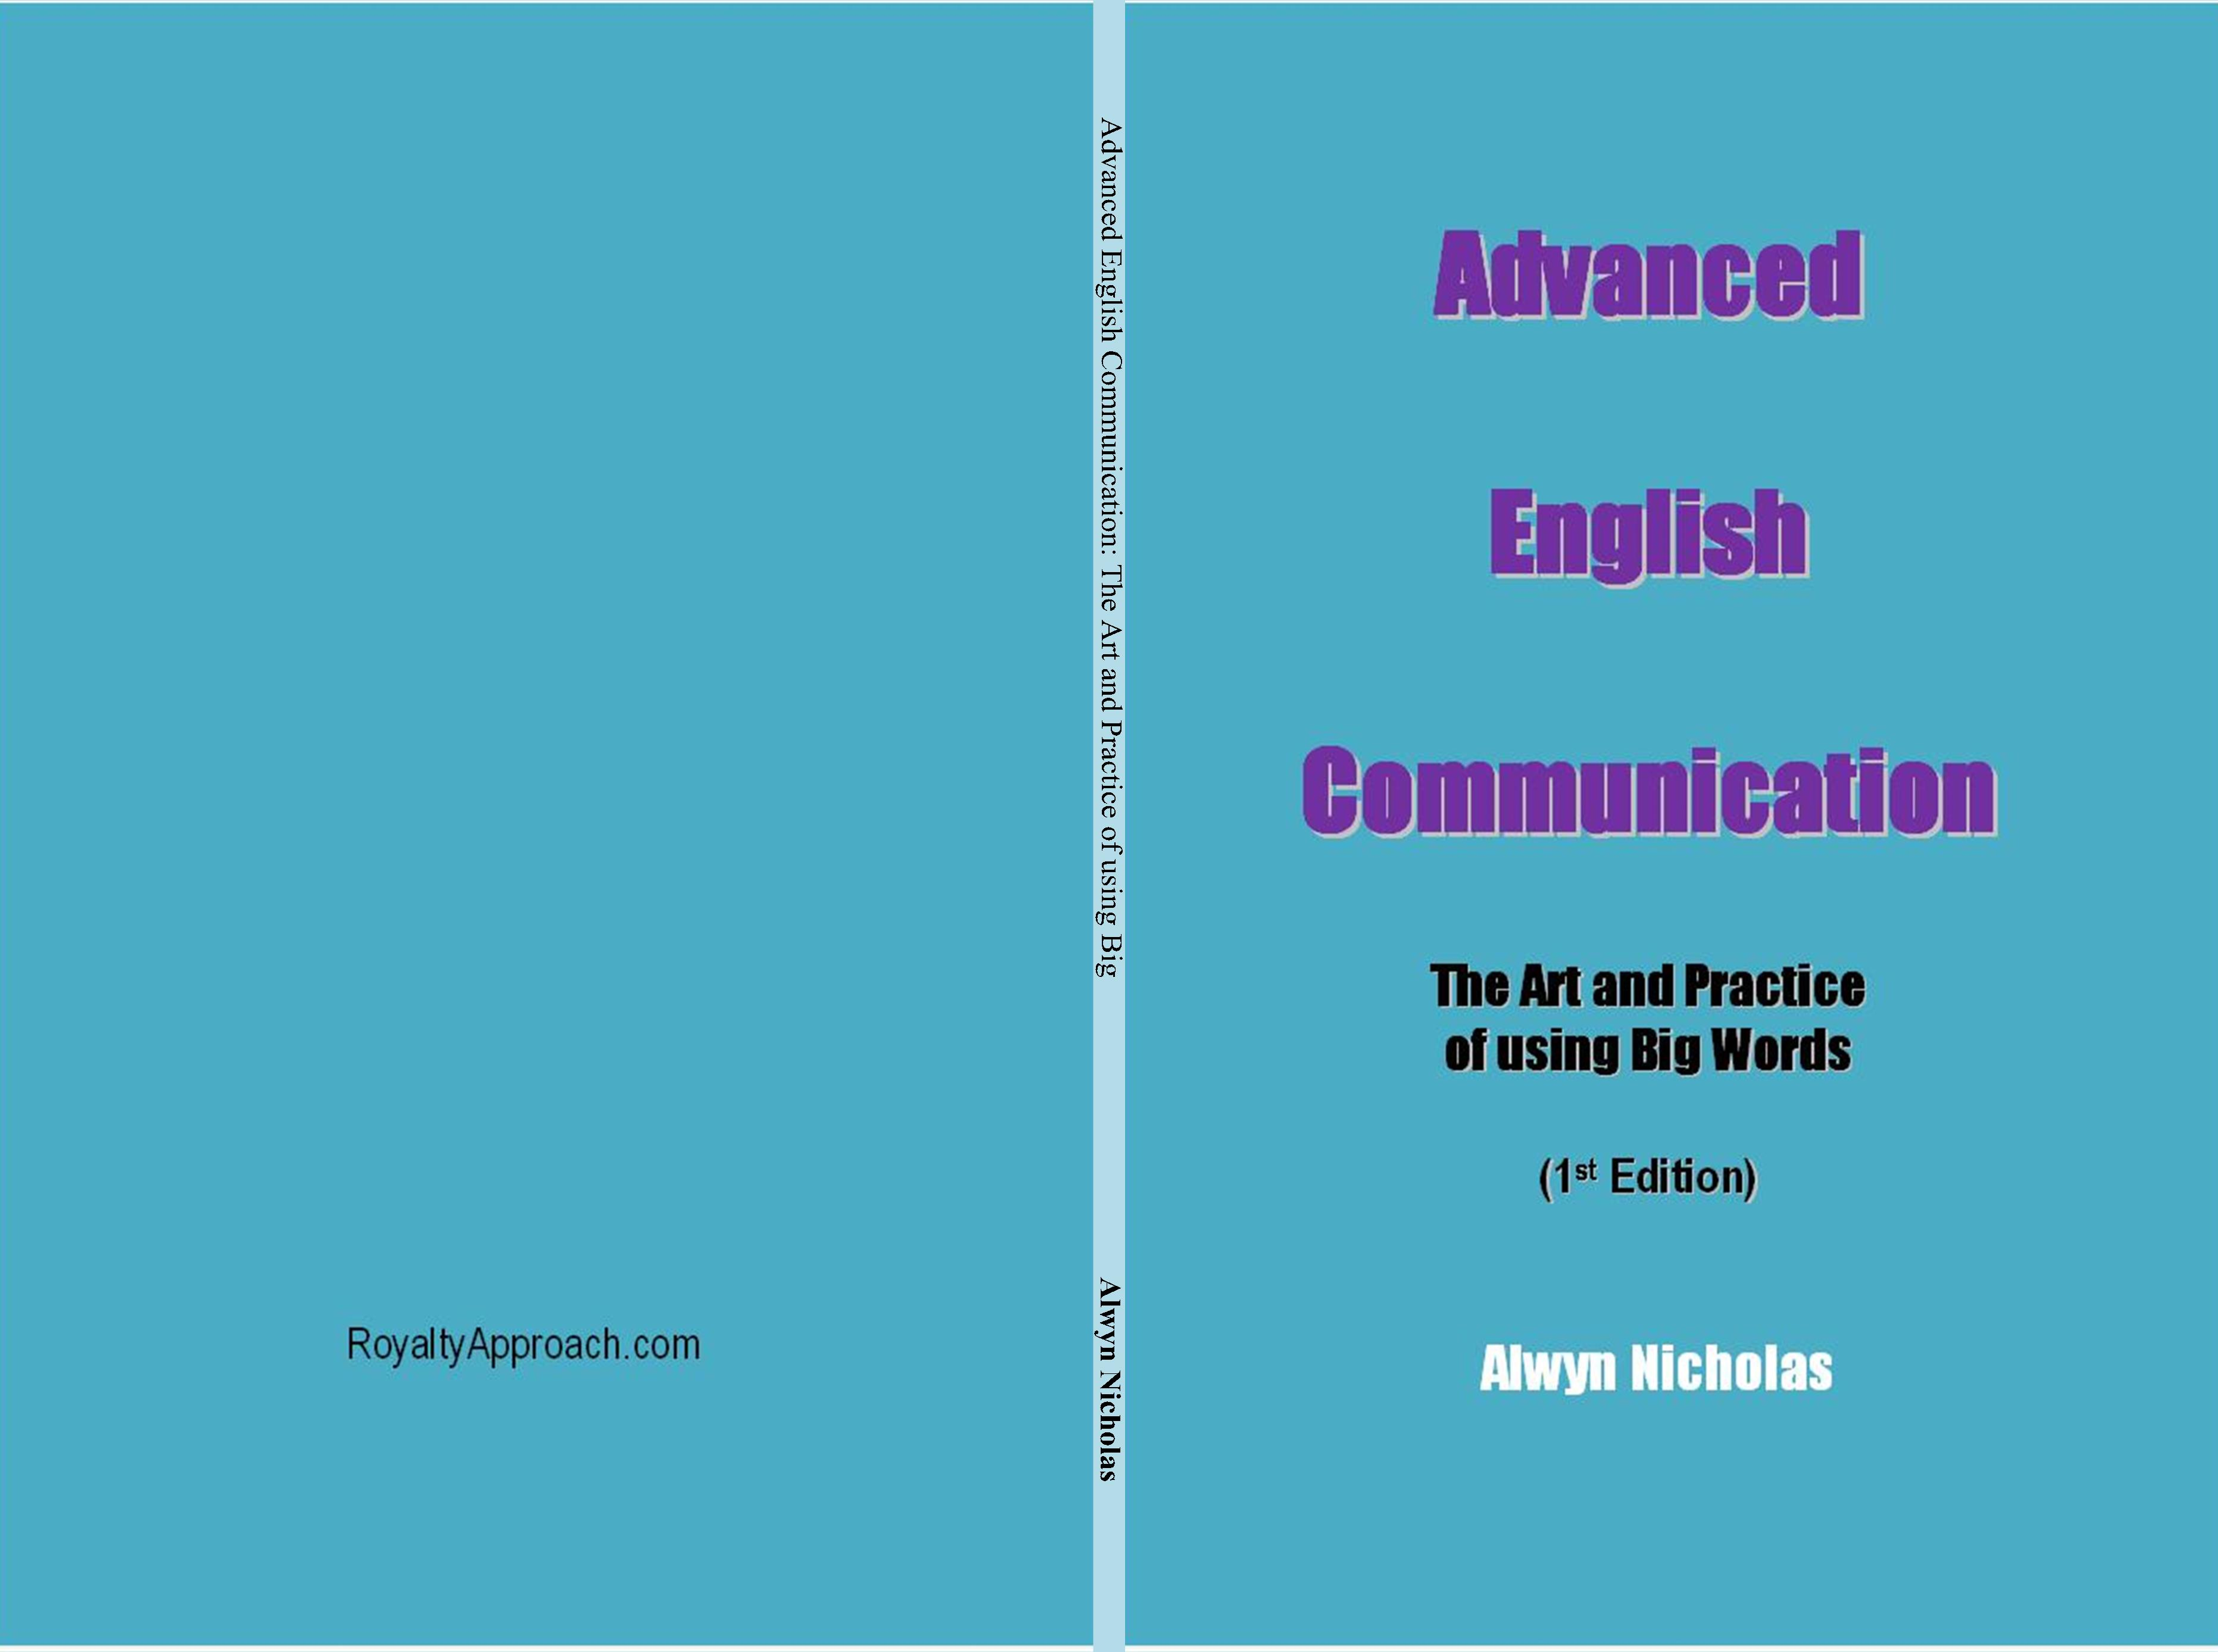 Advanced English Communication: The Art and Practice of using Big Words cover image